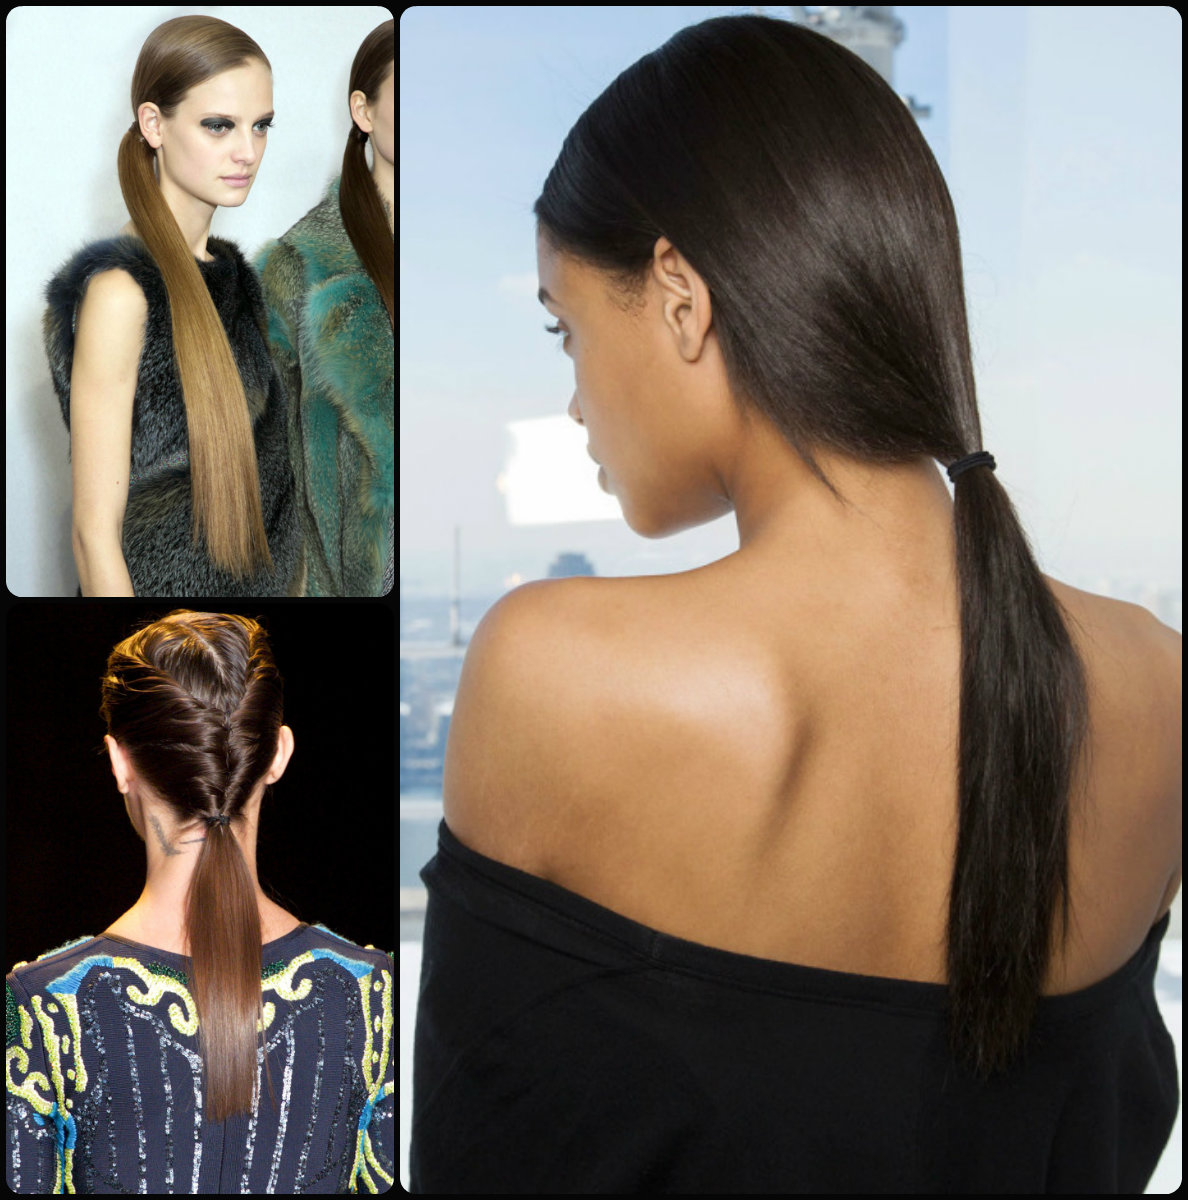 Magnificent Runway Ponytail Hairstyles For Fall 2015 Hairstyles 2017 Hair Hairstyle Inspiration Daily Dogsangcom